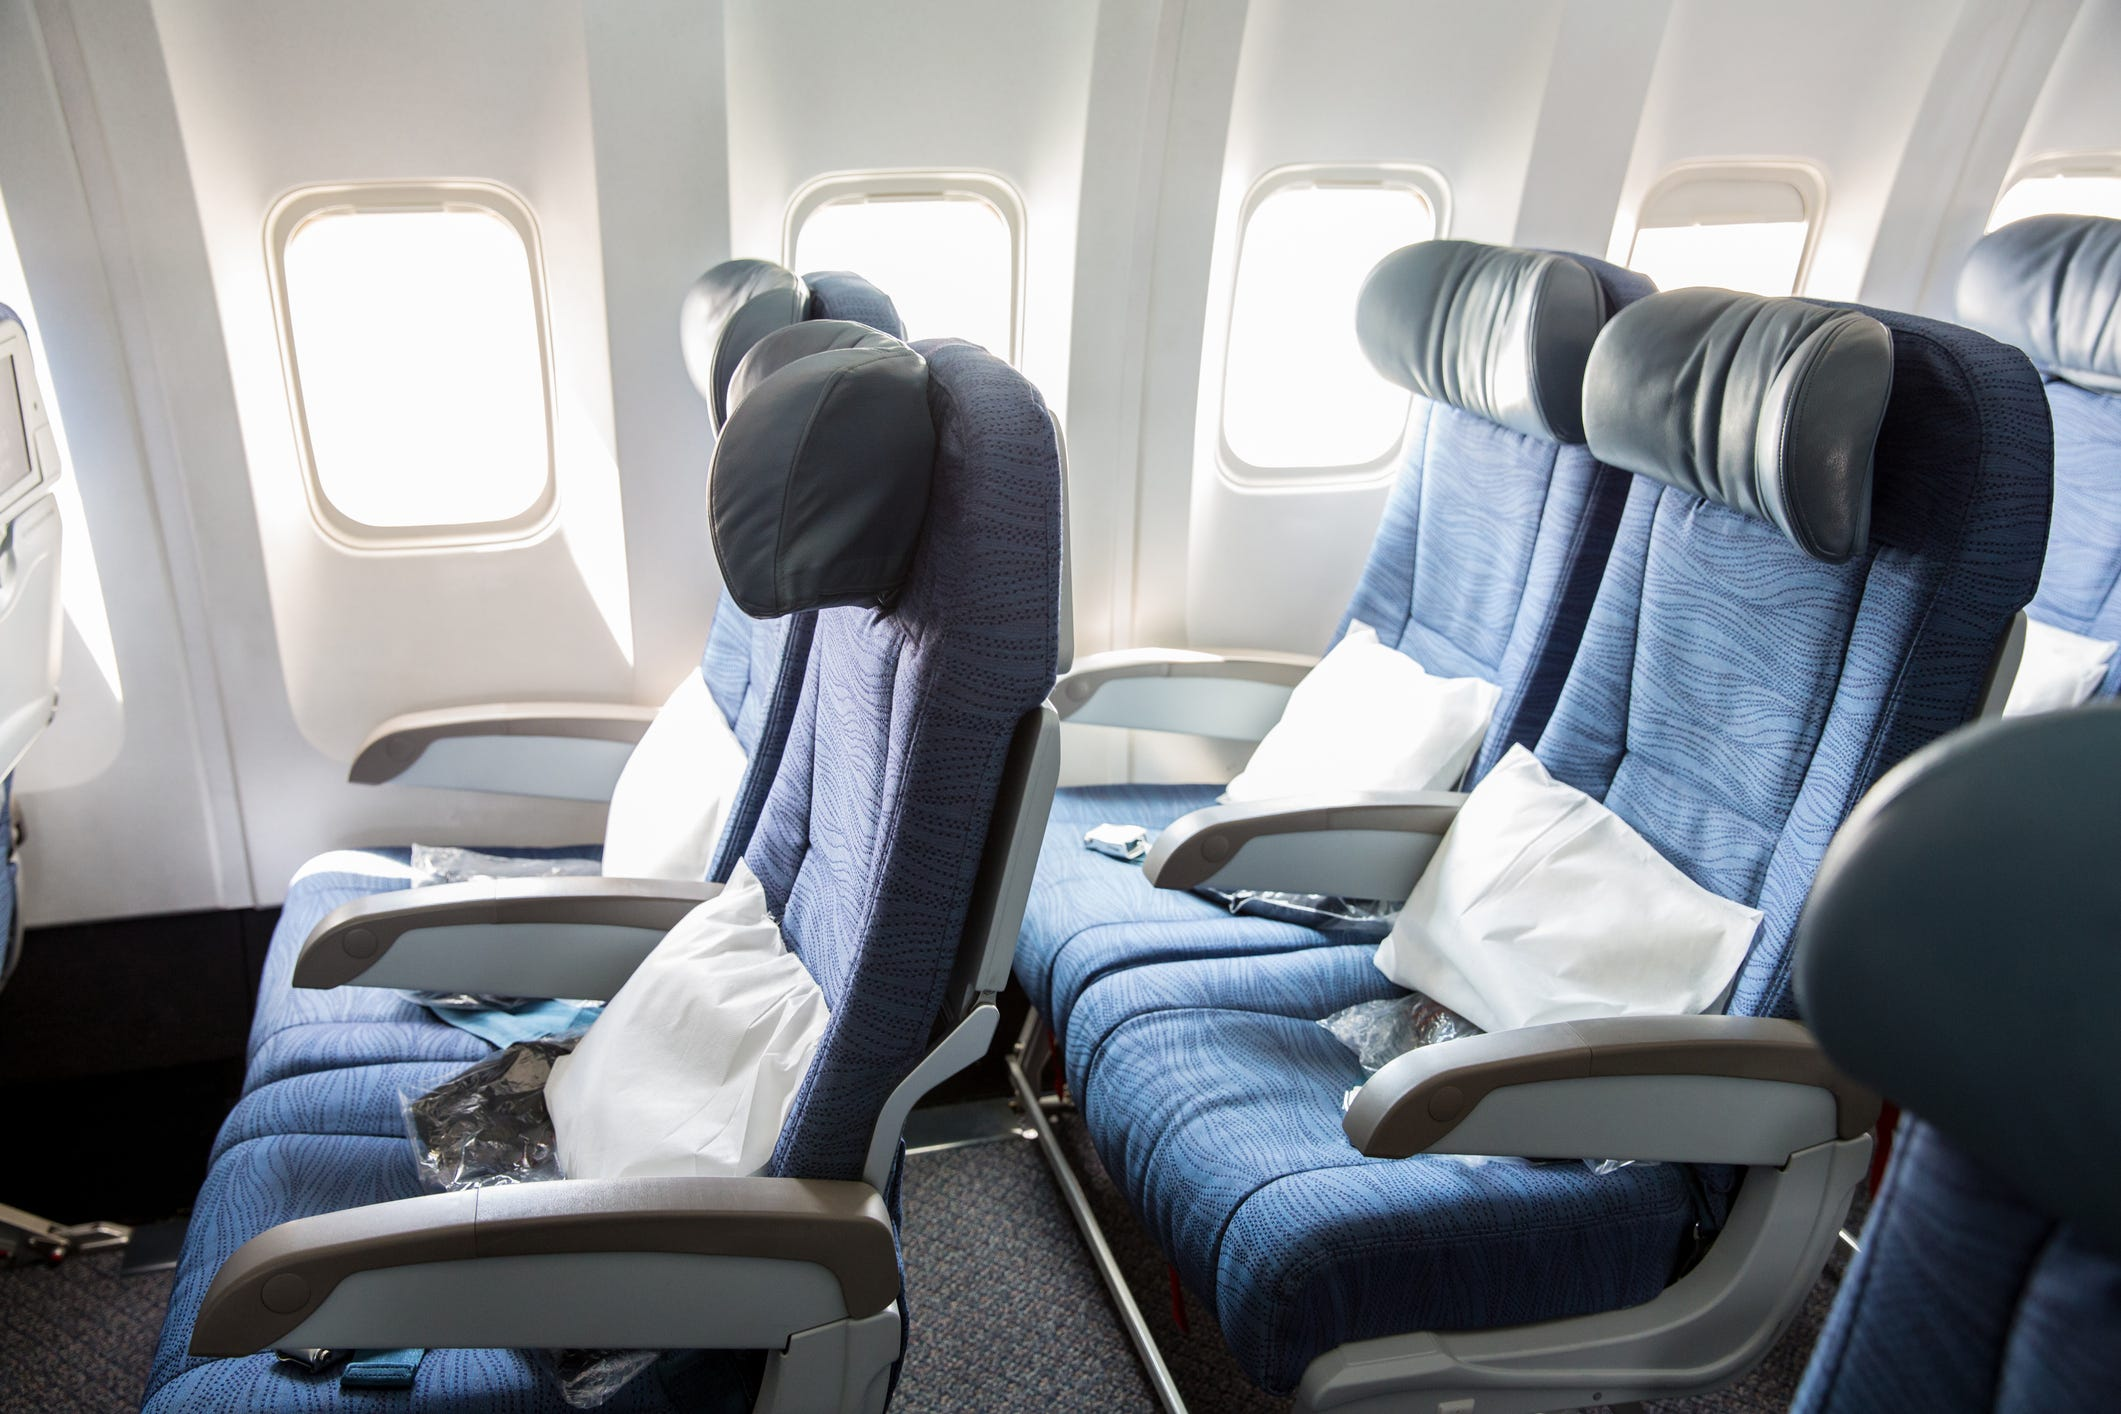 usatoday.com - Christopher Elliott, Special to USA TODAY - Oversized flyers a challenge for seatmates and airlines